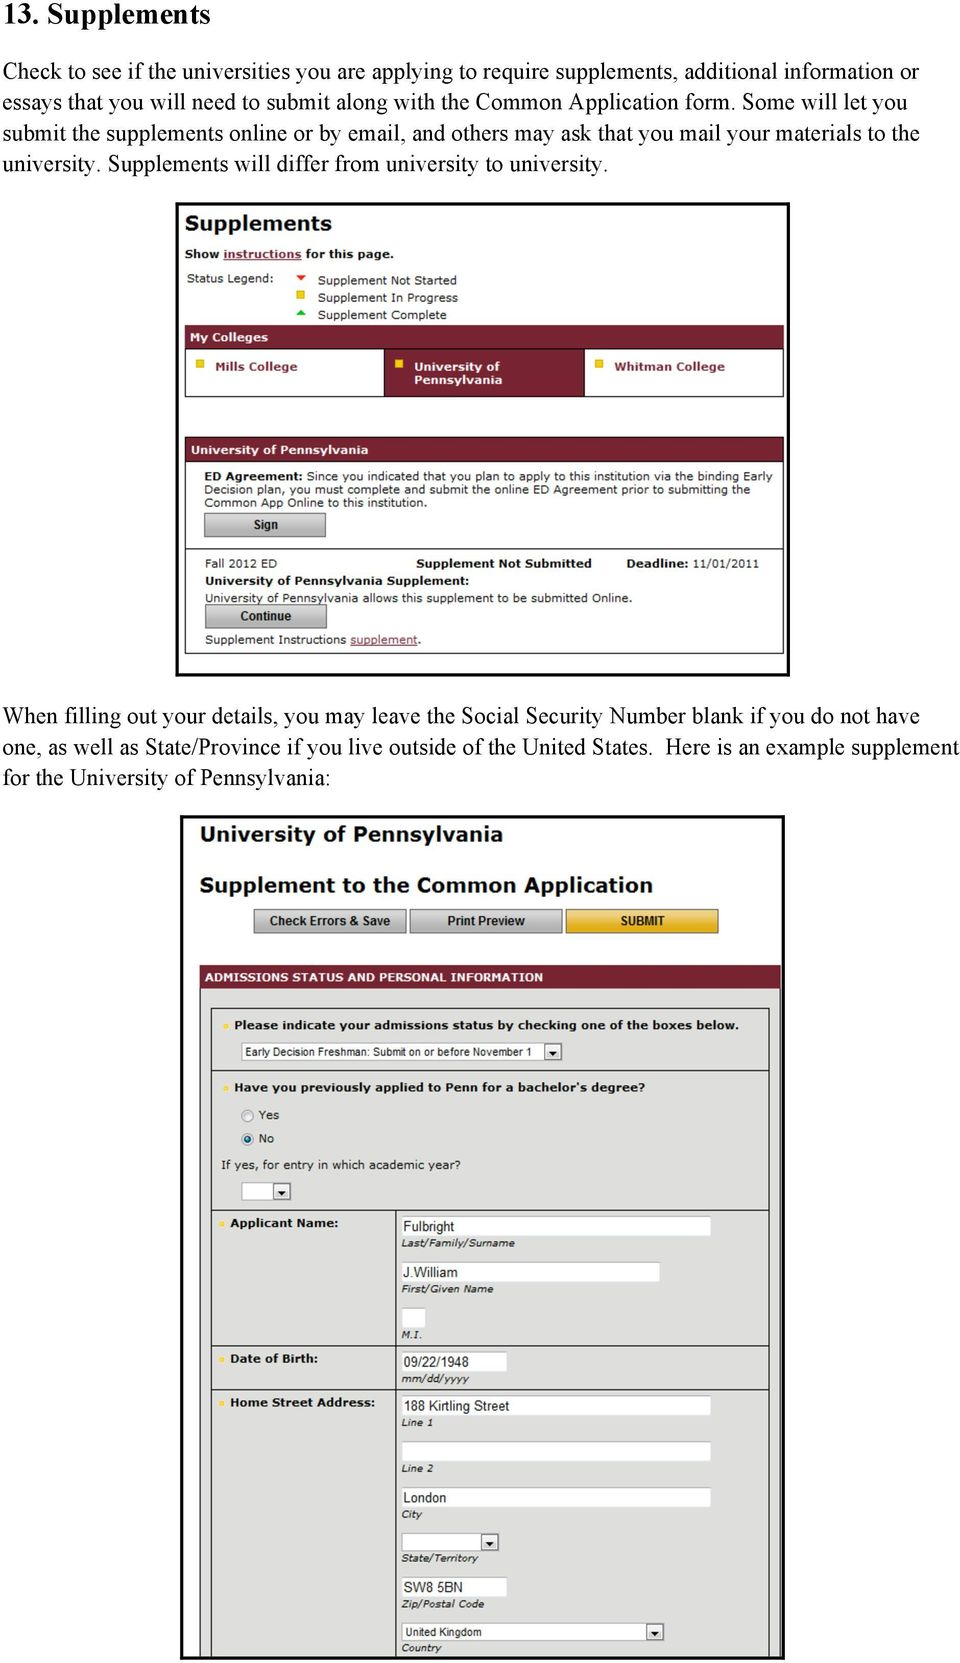 Some will let you submit the supplements online or by email, and others may ask that you mail your materials to the university.